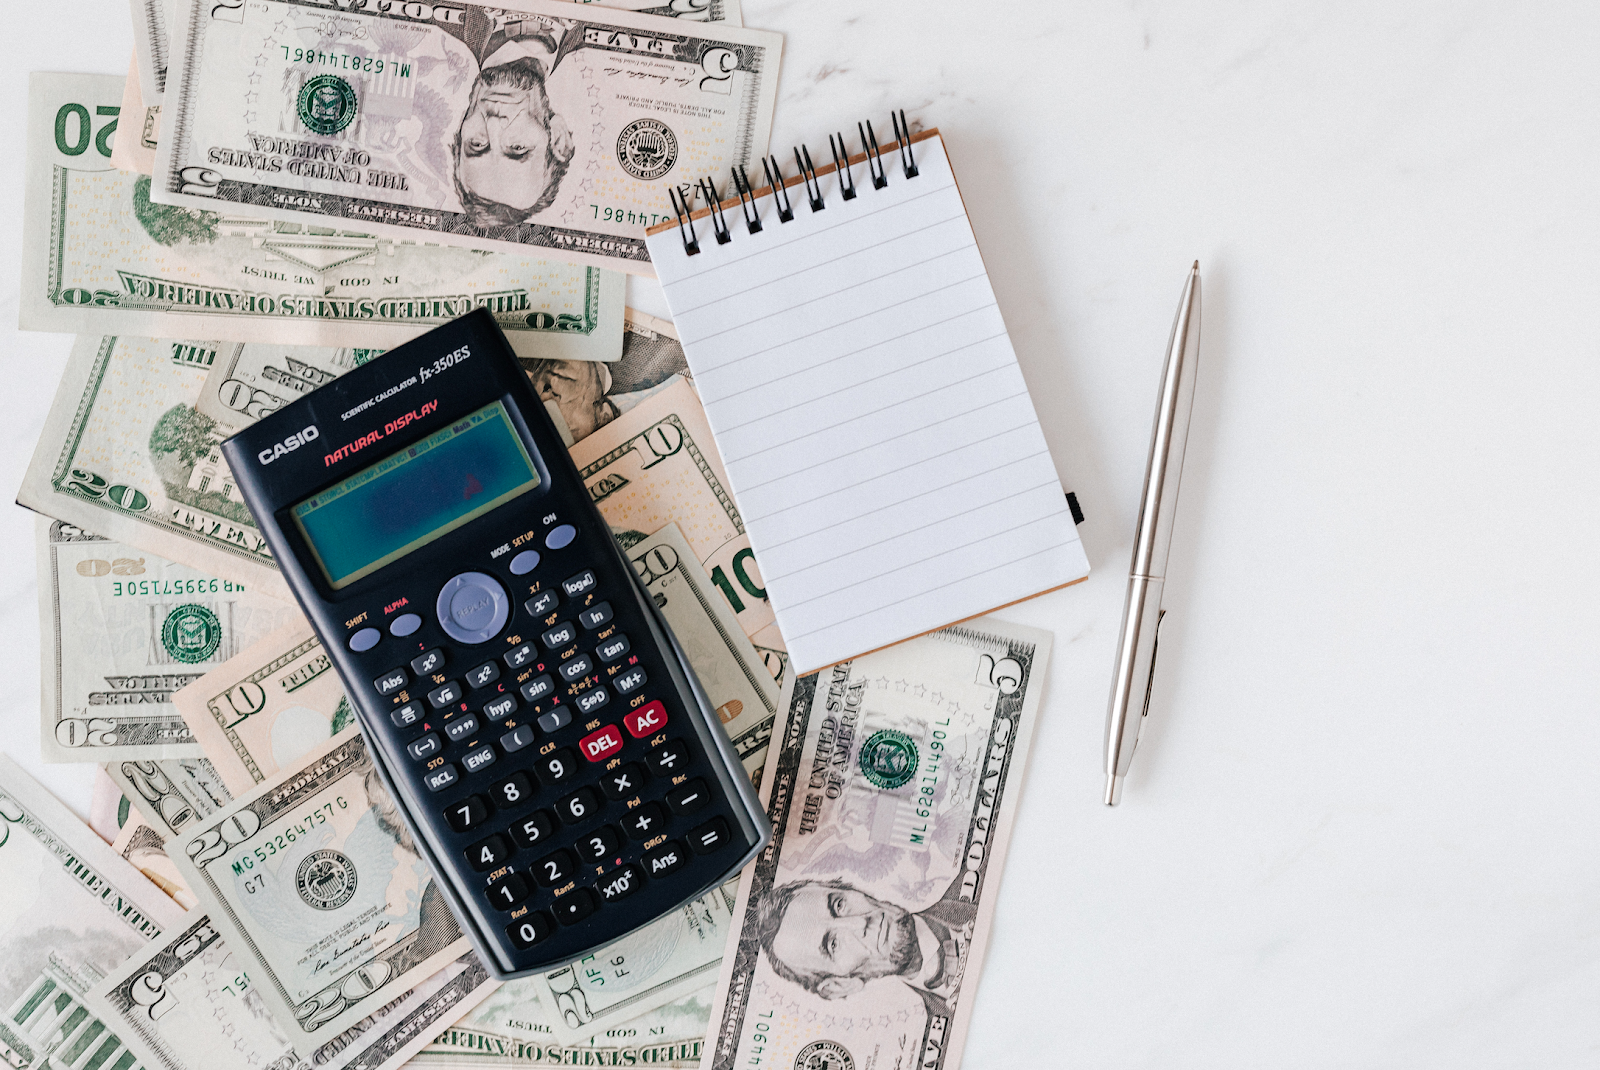 a calculator and memo pad sitting on top of spread out money